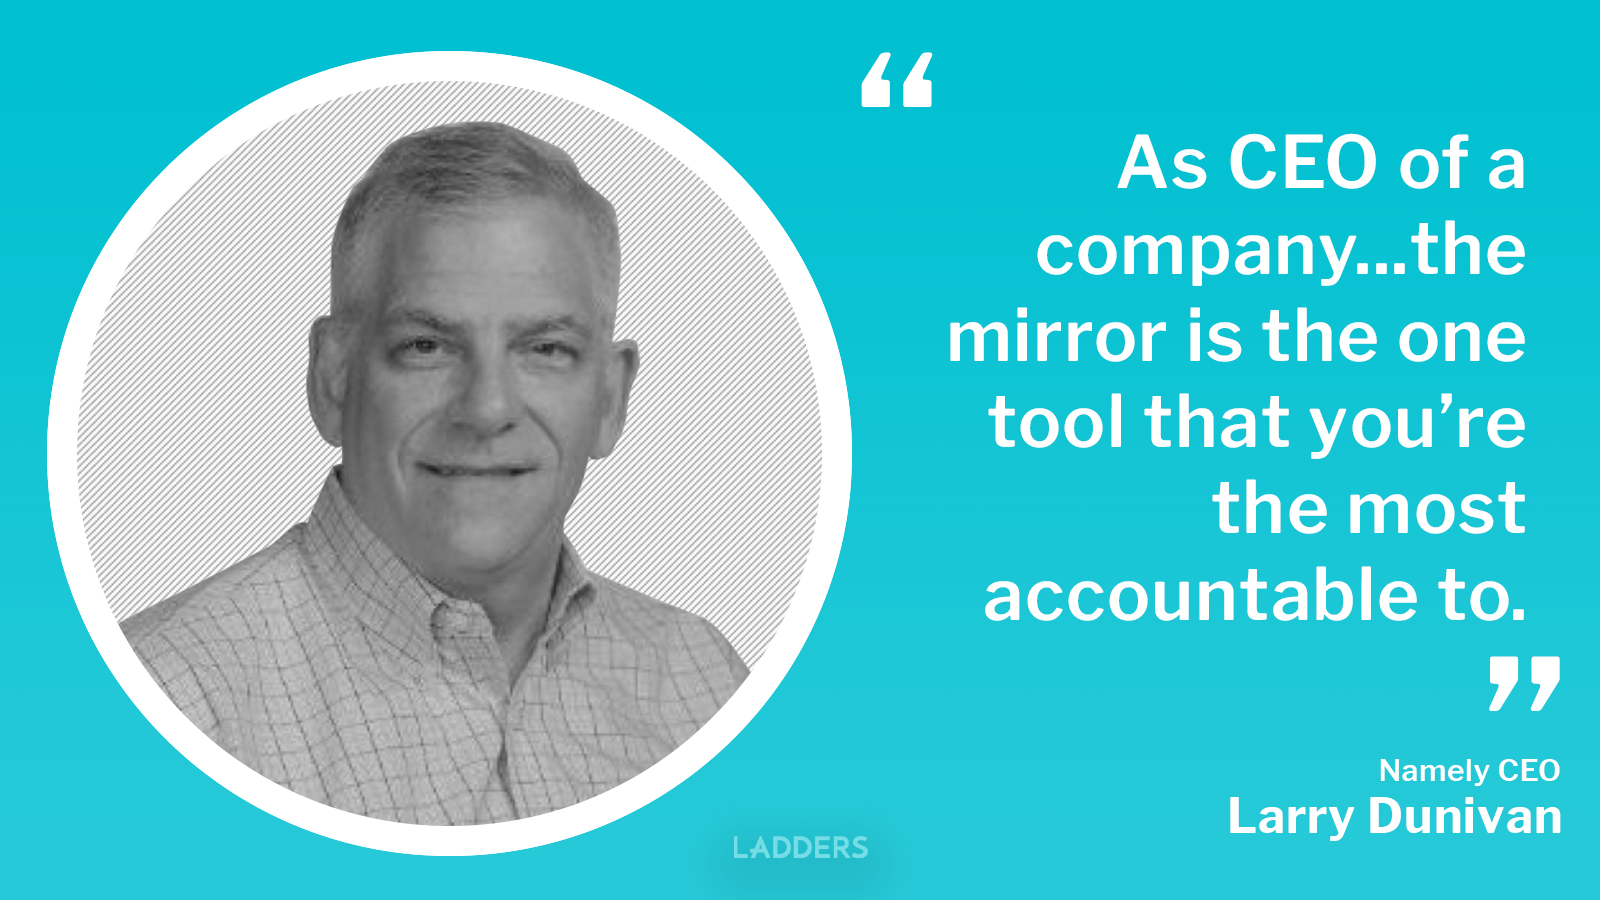 Namely CEO Larry Dunivan on removing the guesswork from creating a better workplace